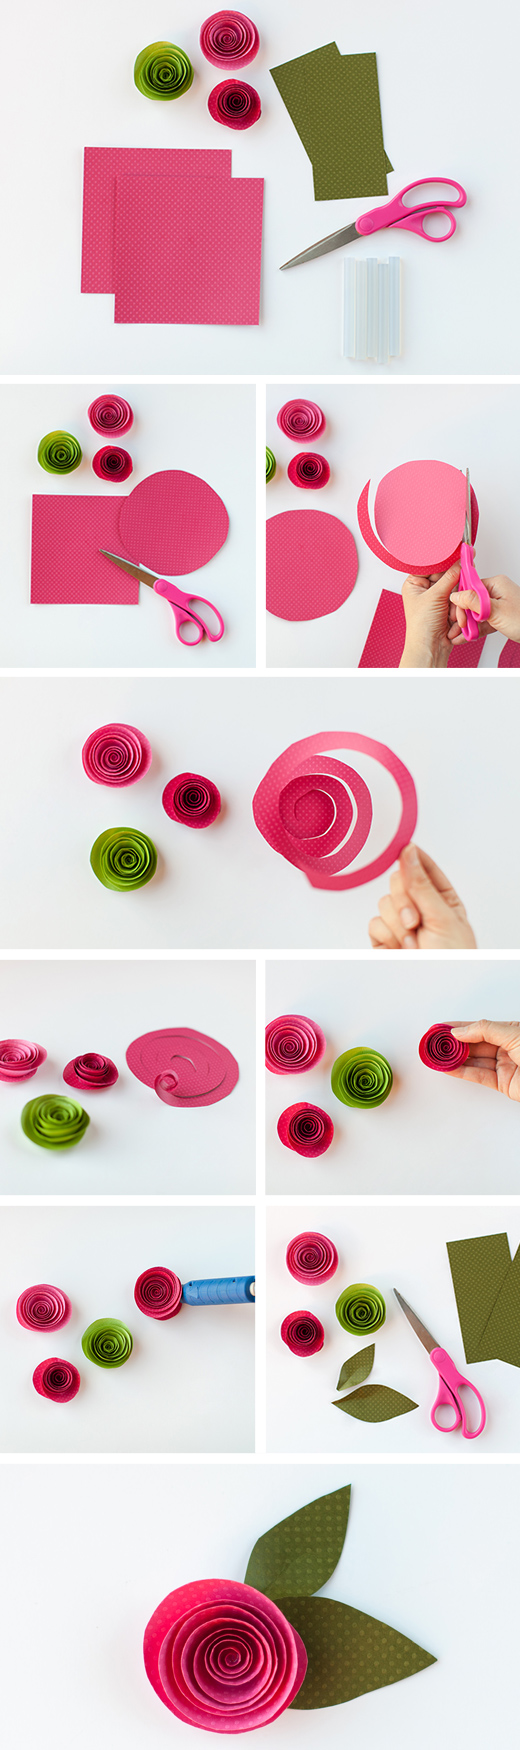 DIY: Rolled Flowers